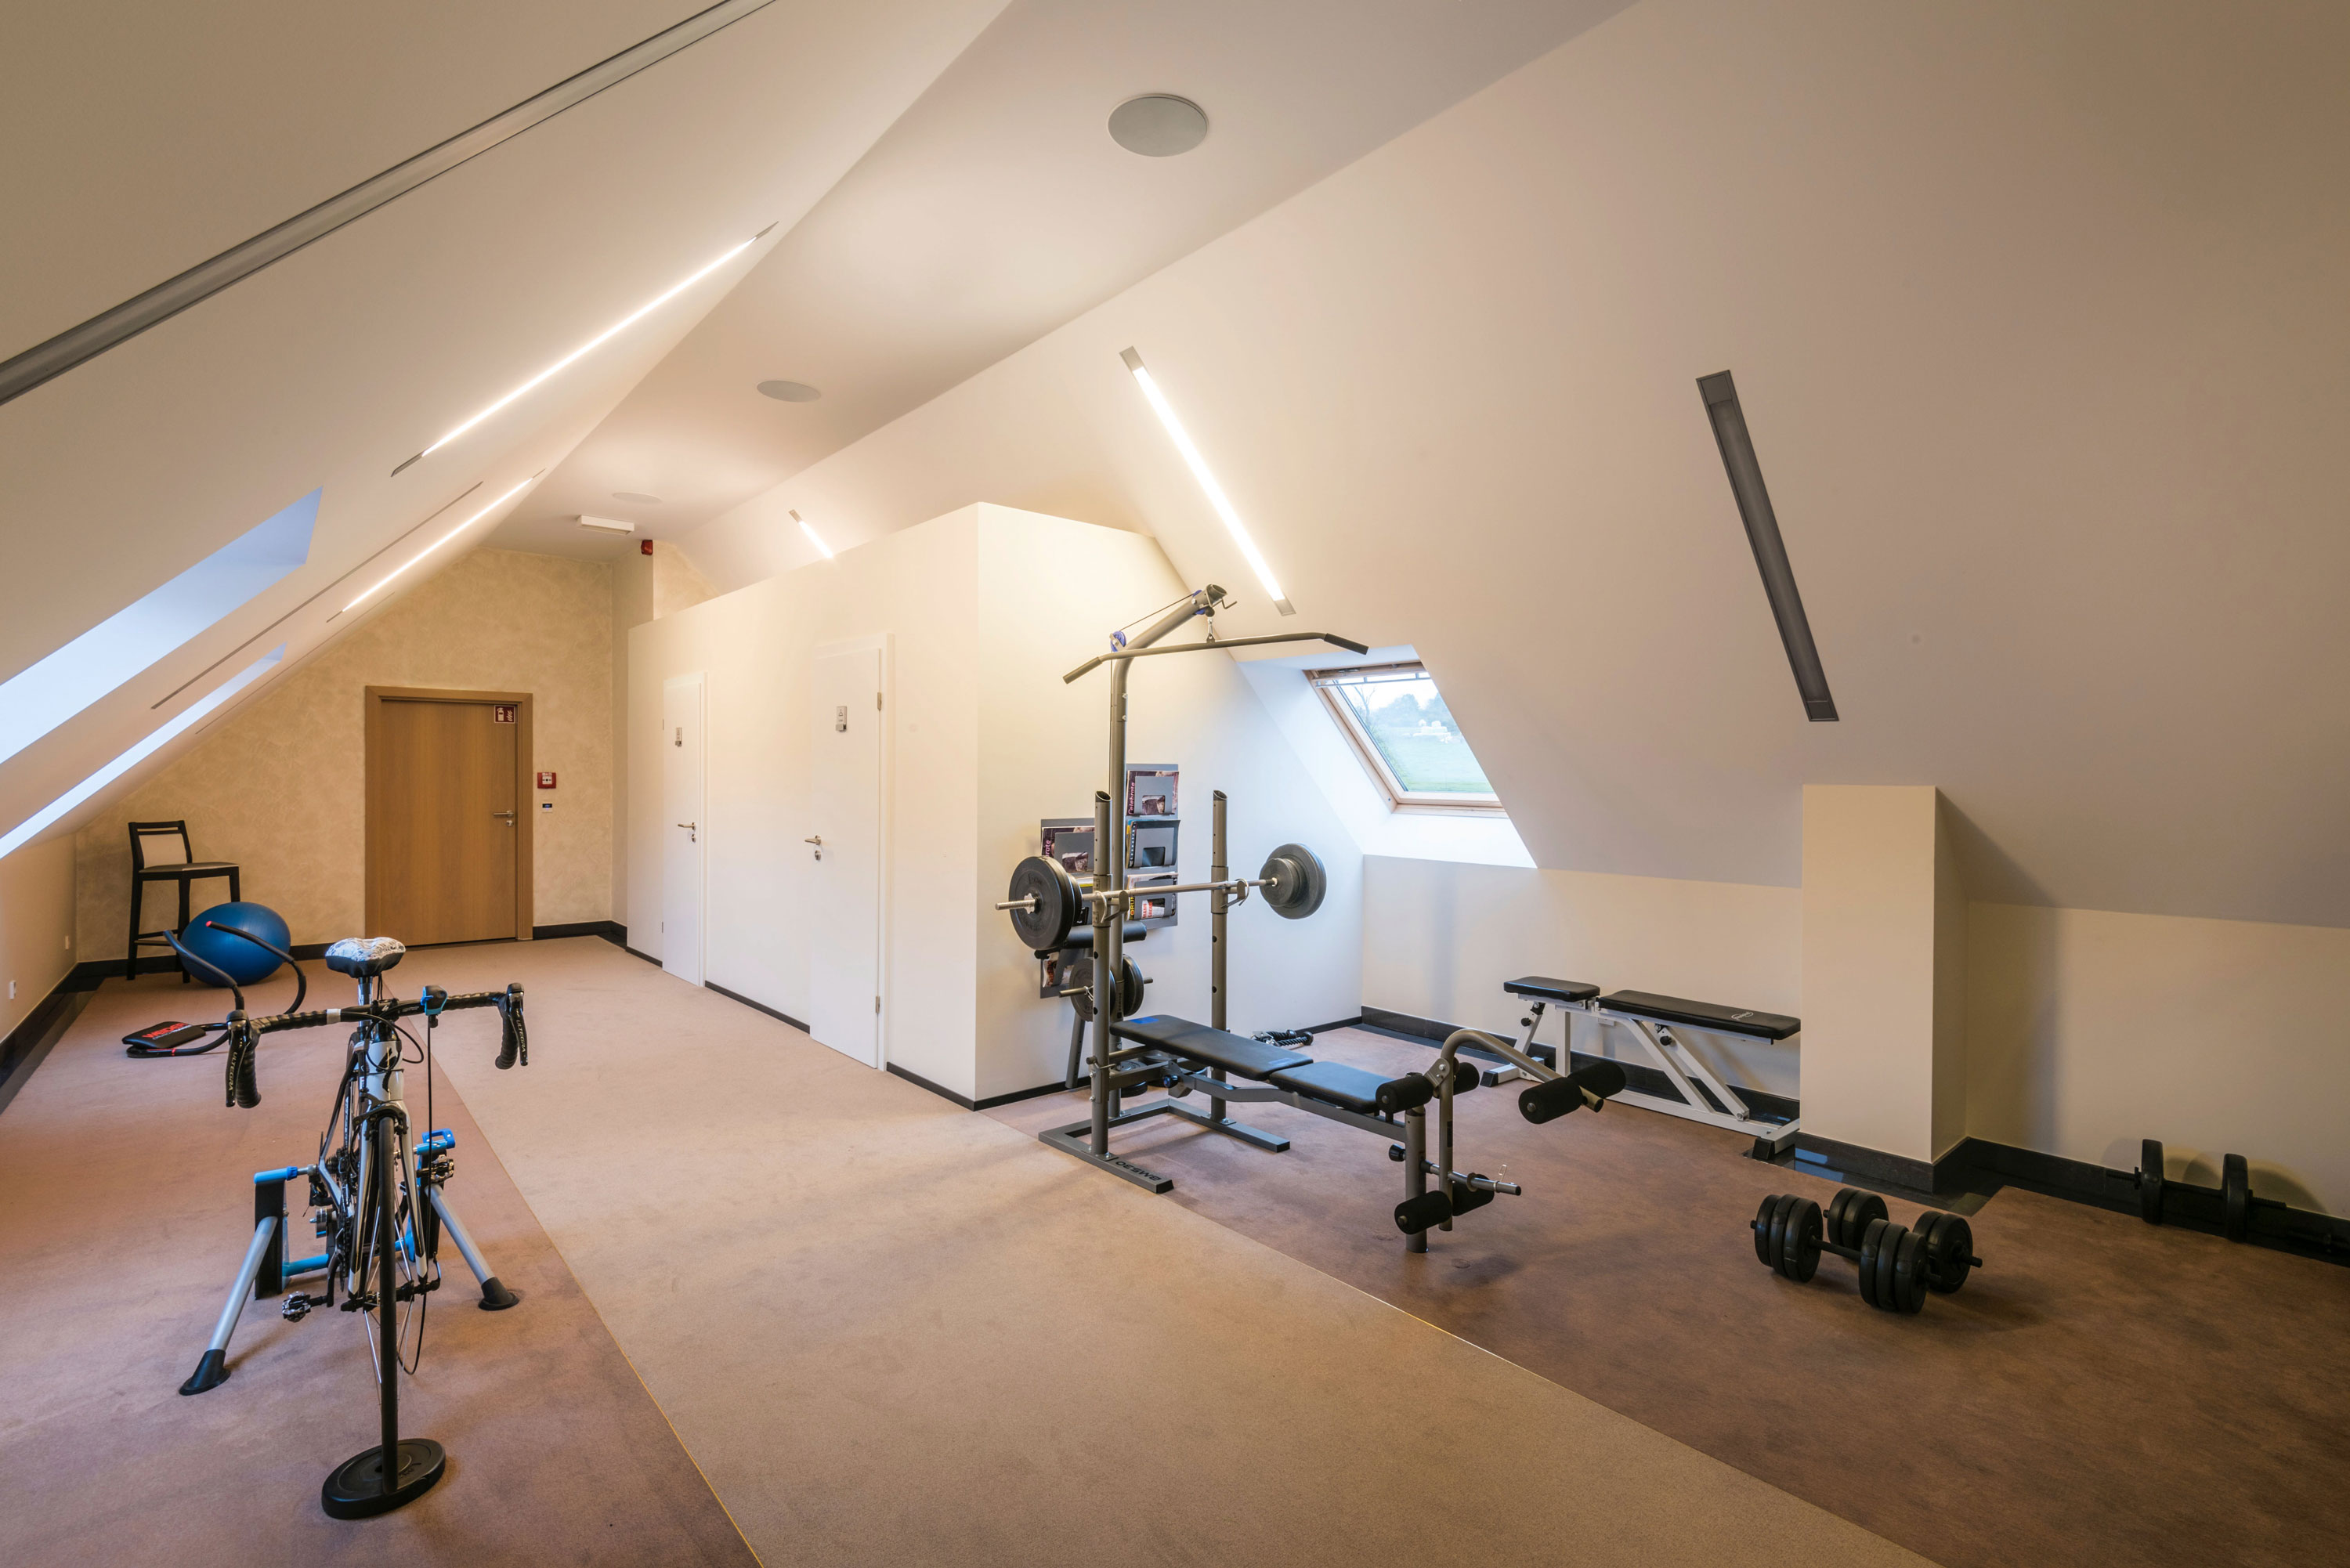 Hotel Le Bon Repos: wellness, gym, bike center